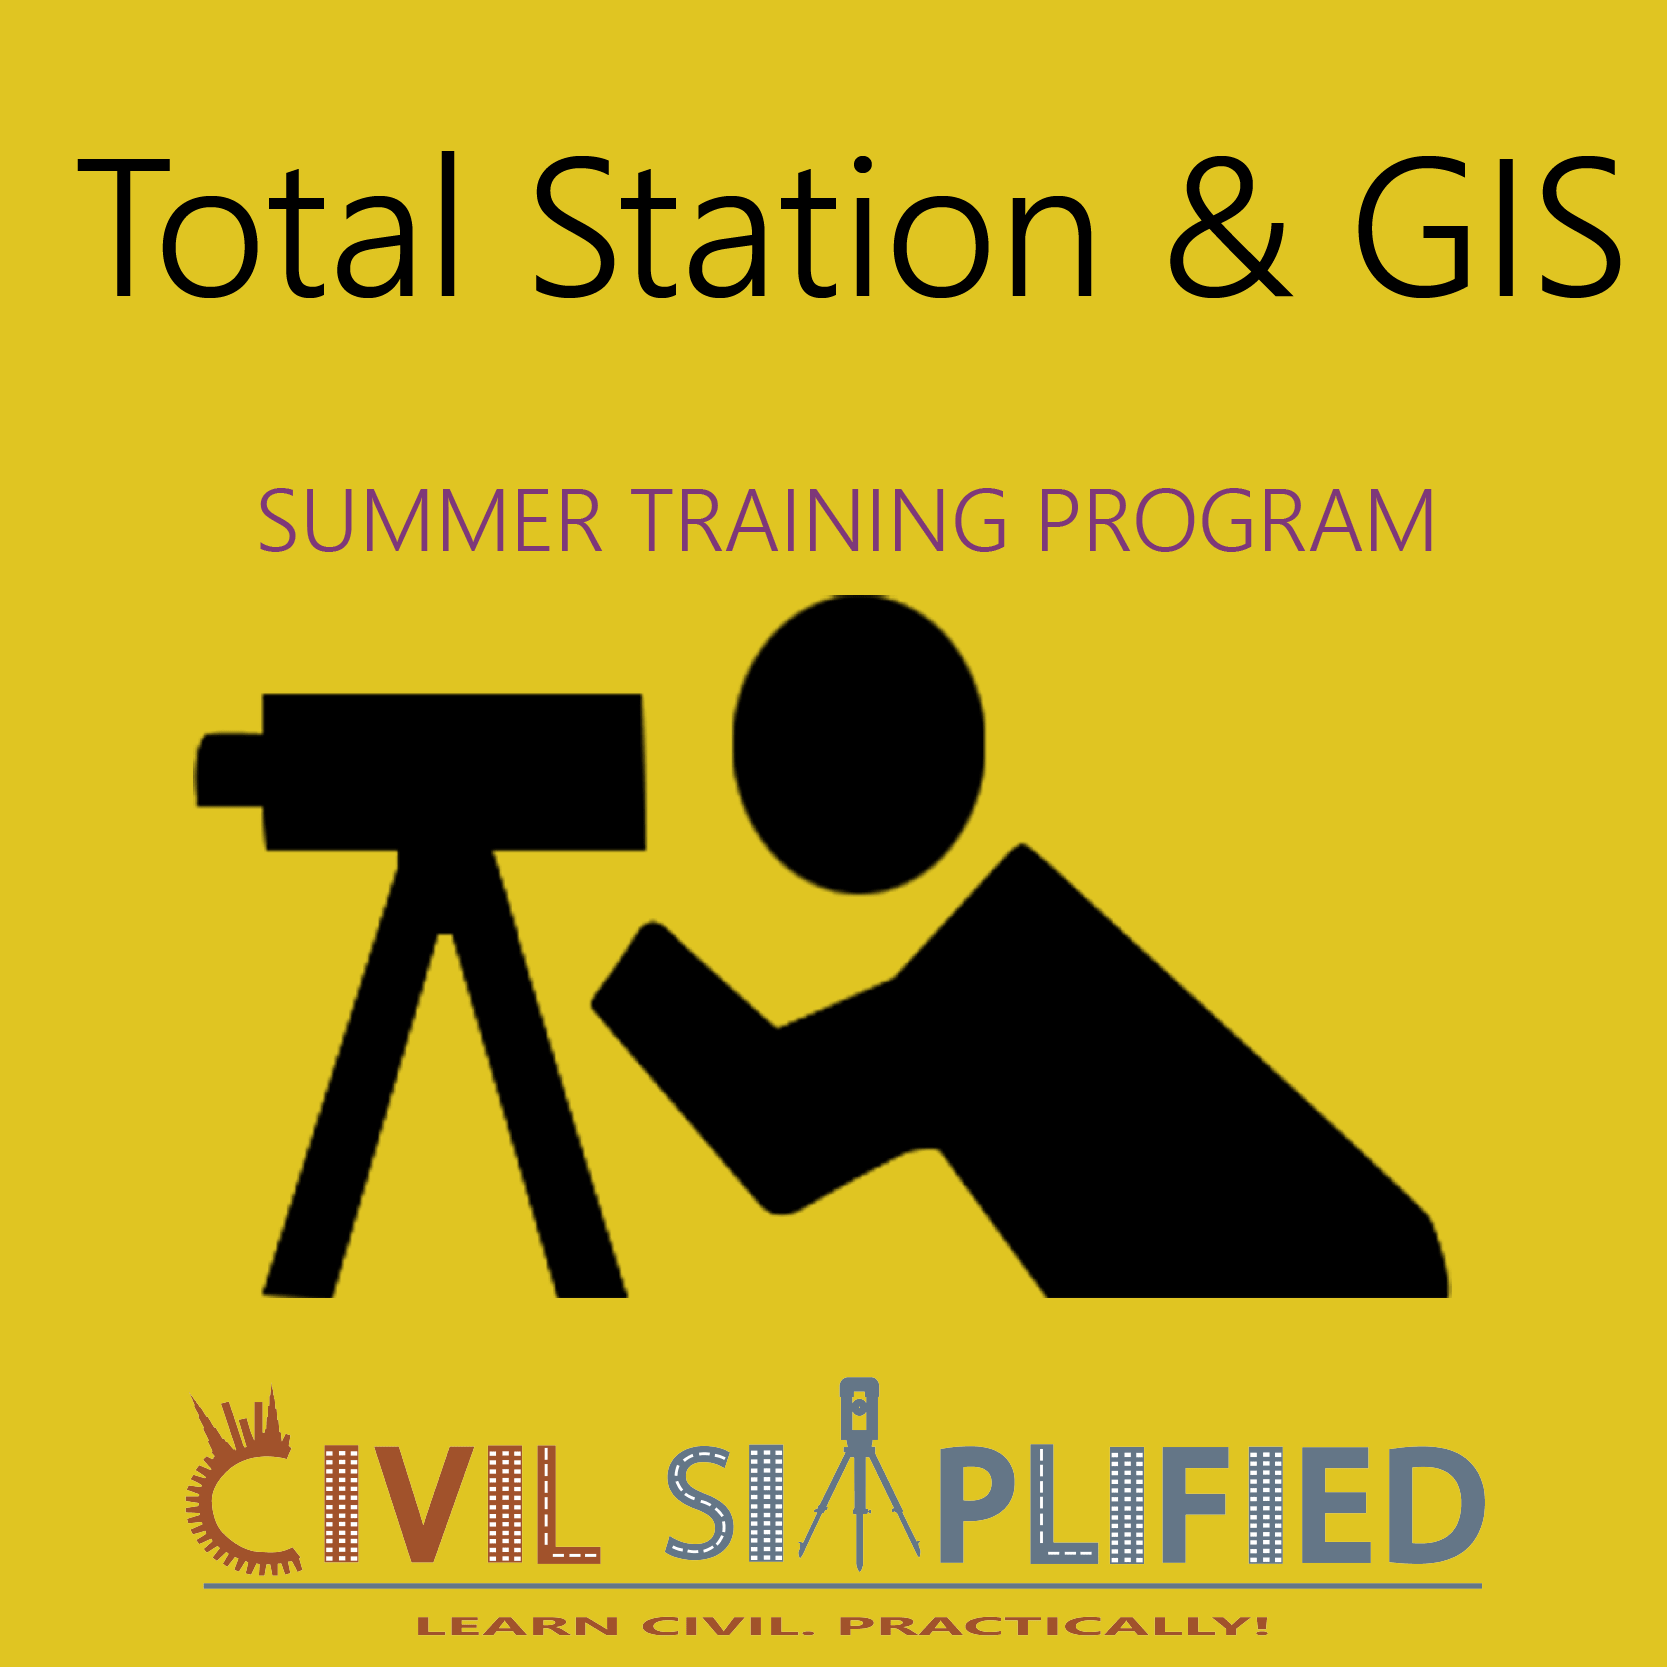 Summer Training Program in Civil Engineering - Total Station and GIS in Bangalore